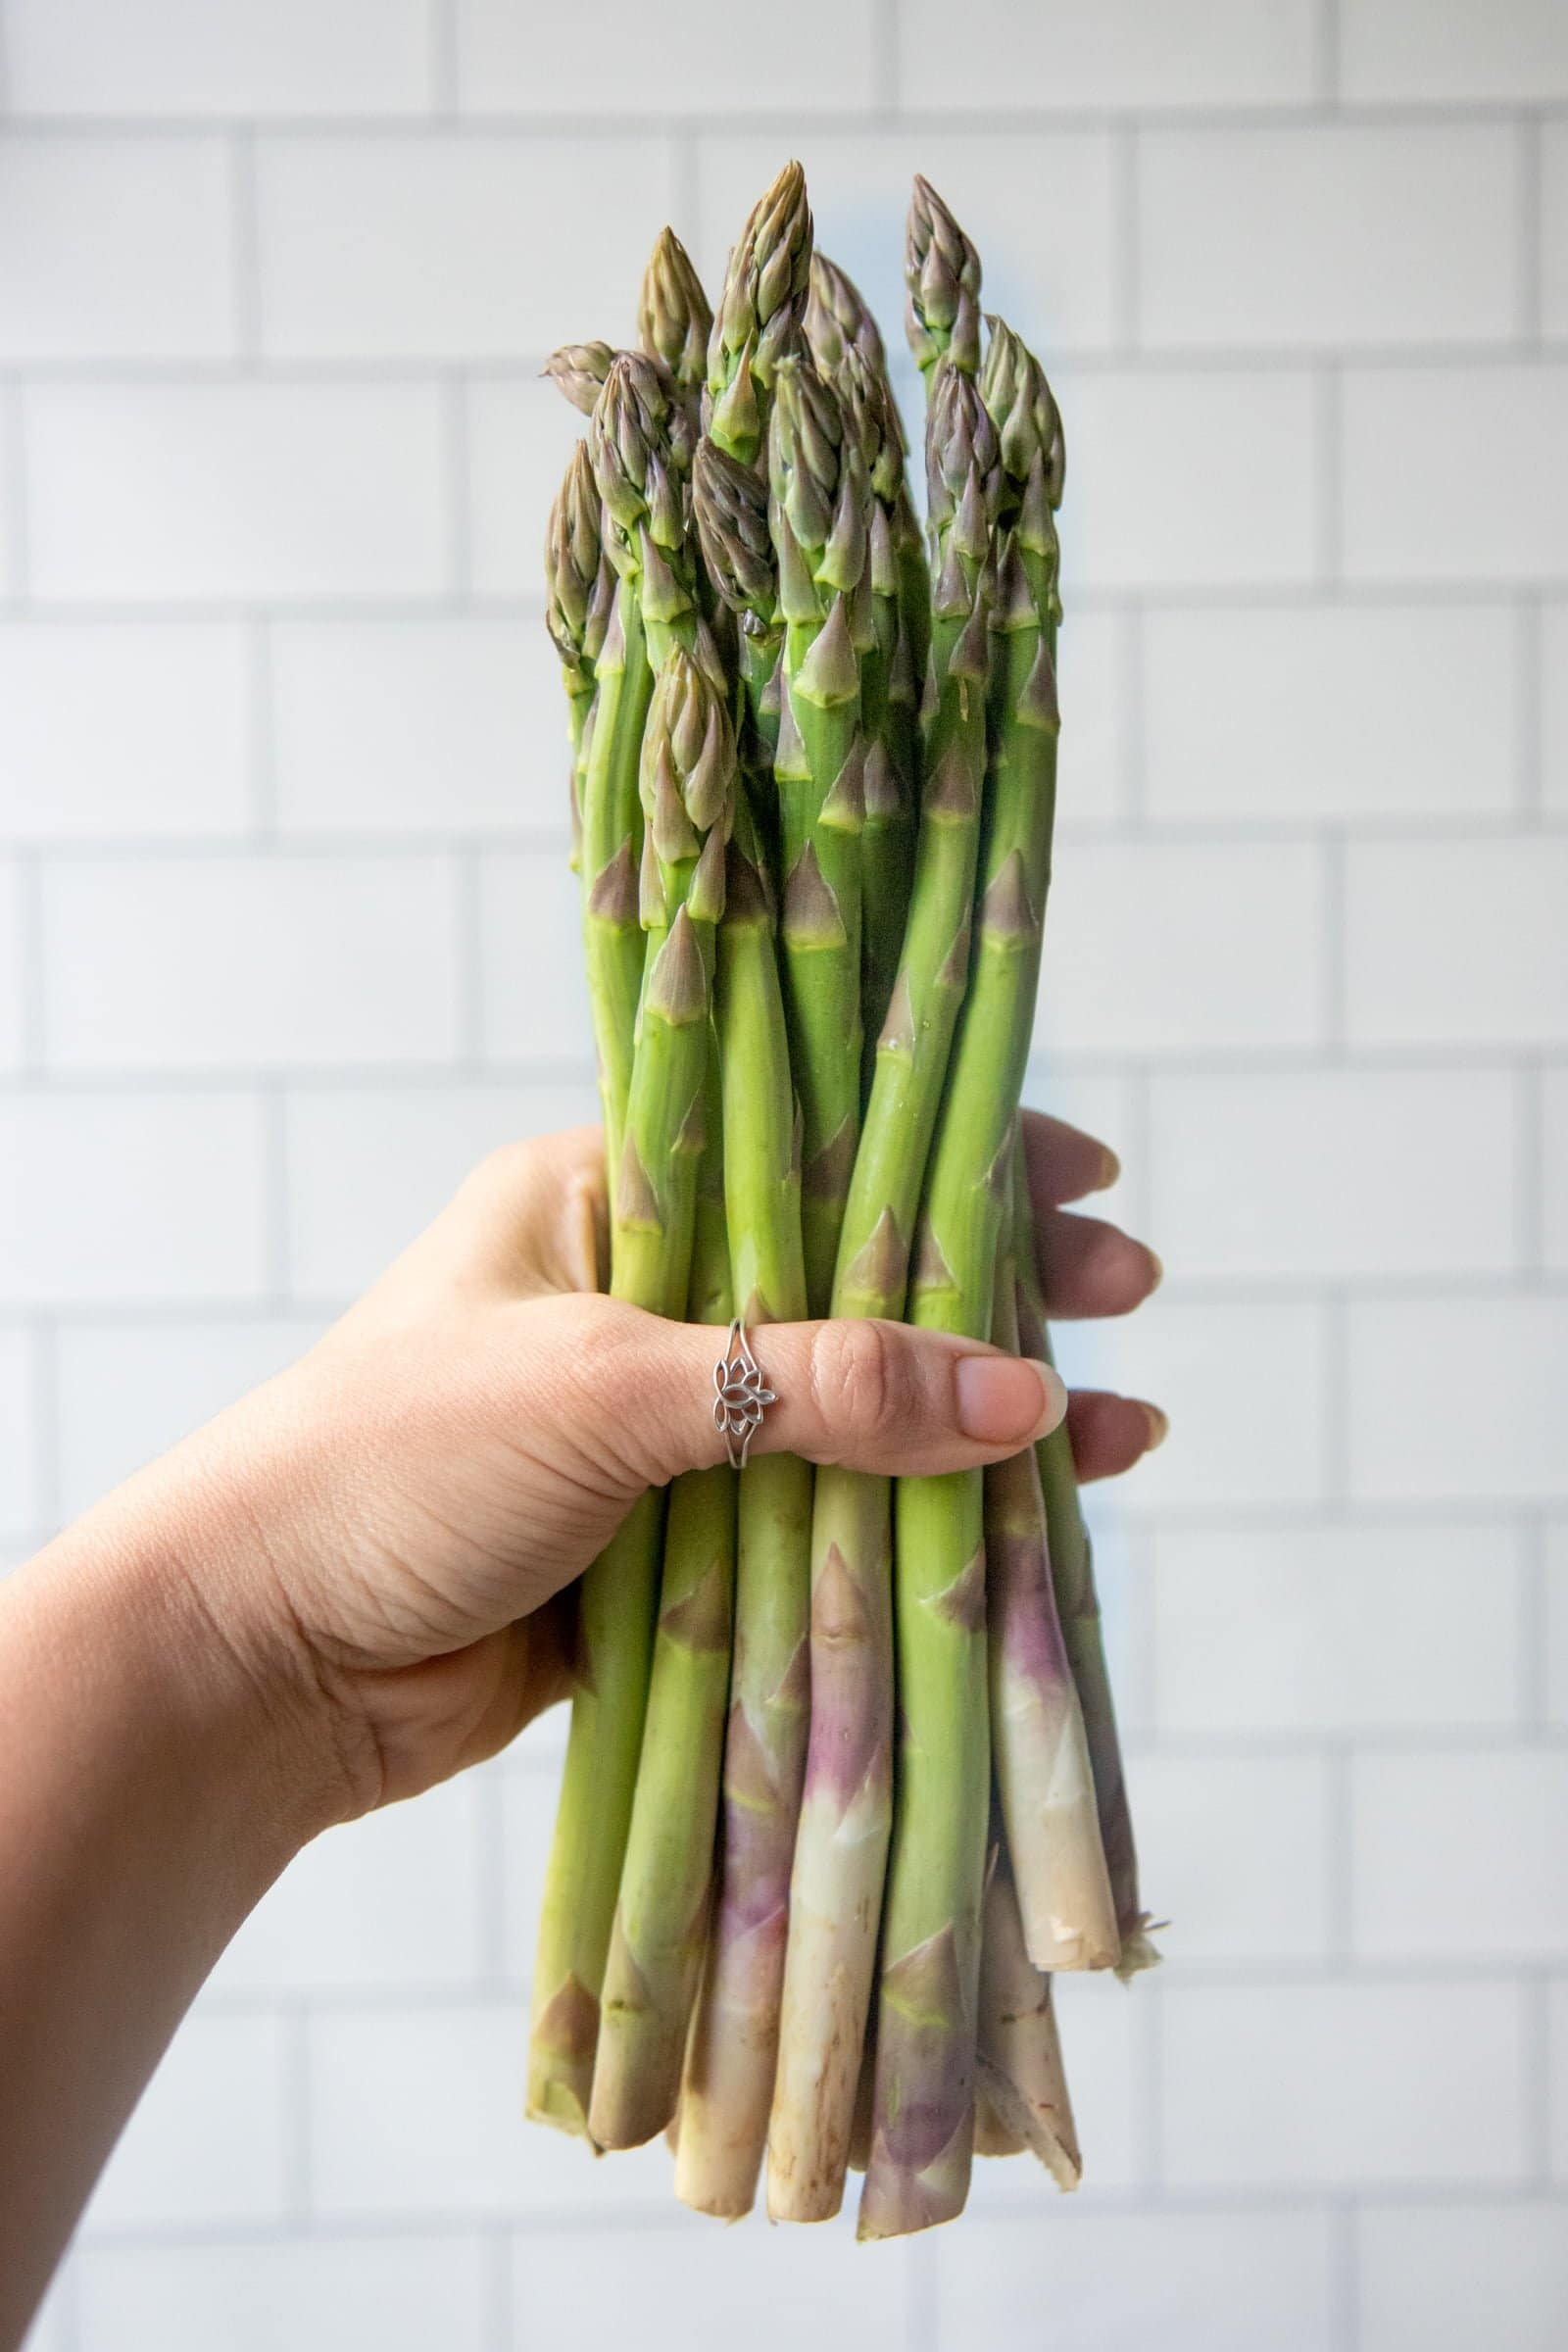 Hand holding a bunch of asparagus spears in front of a white tile background.